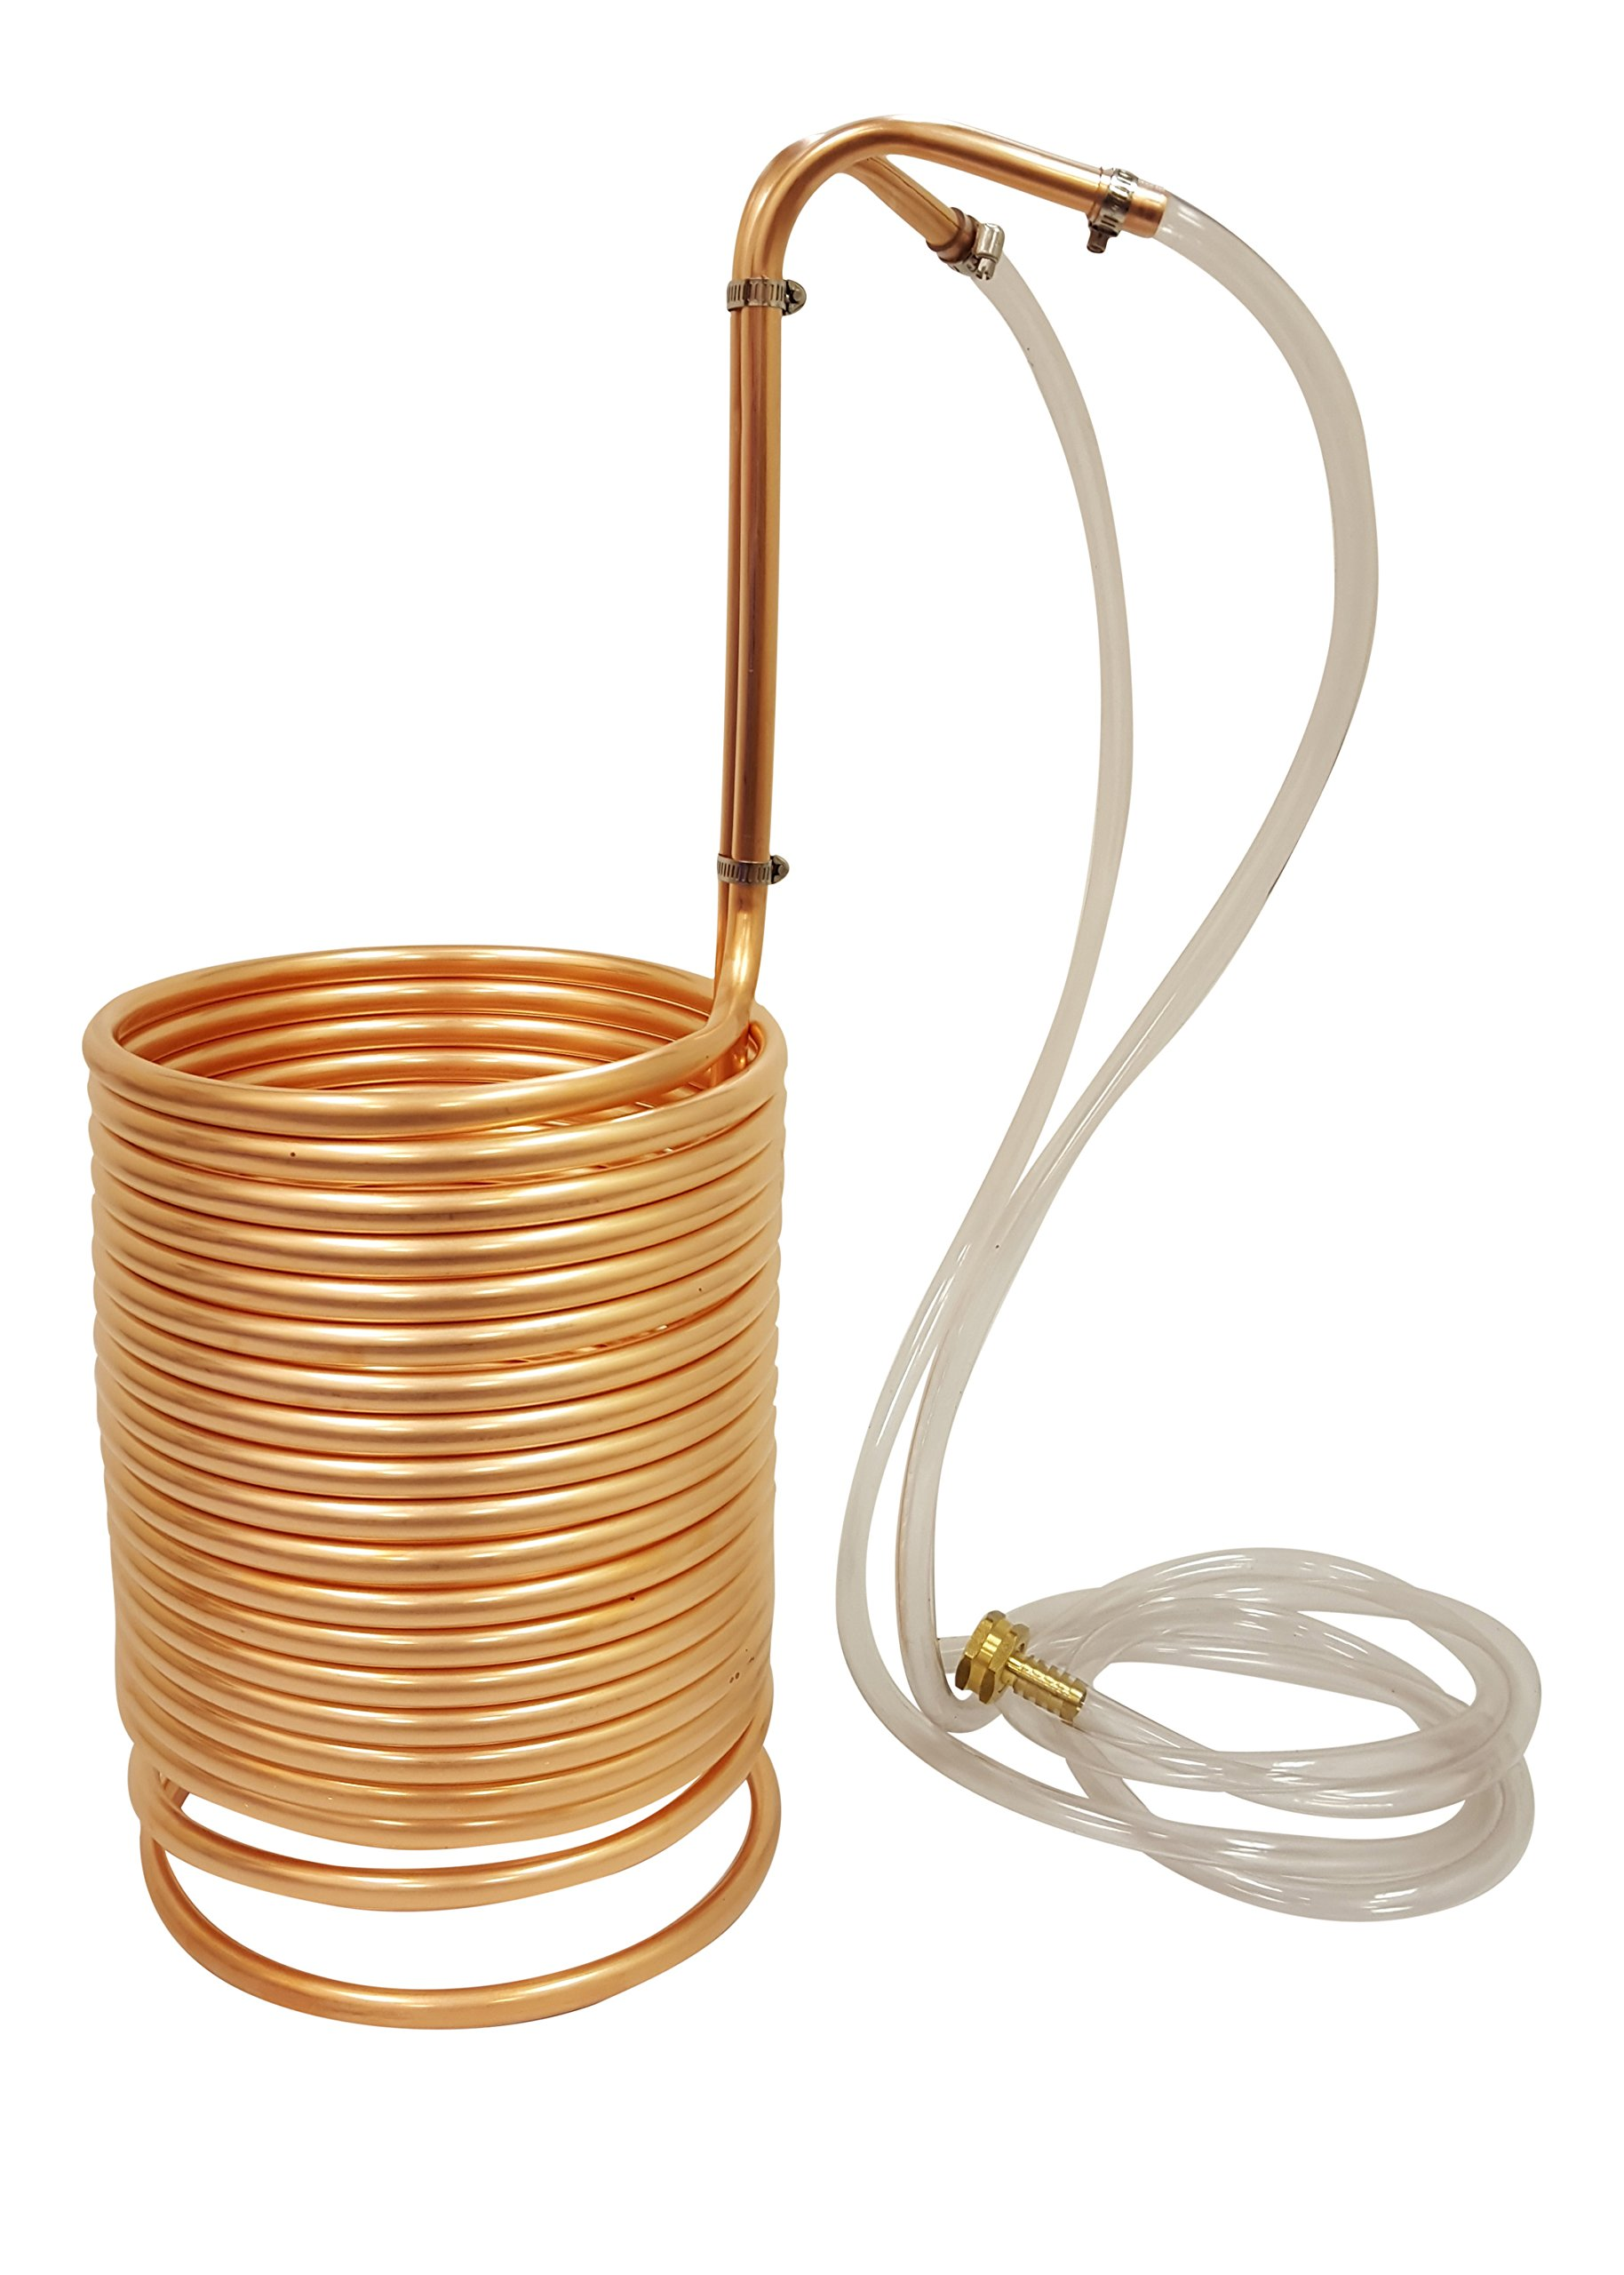 NY Brew Supply Wort Chiller w/vinyl tubing attachments, 1/2'' x 50', Copper by NY Brew Supply